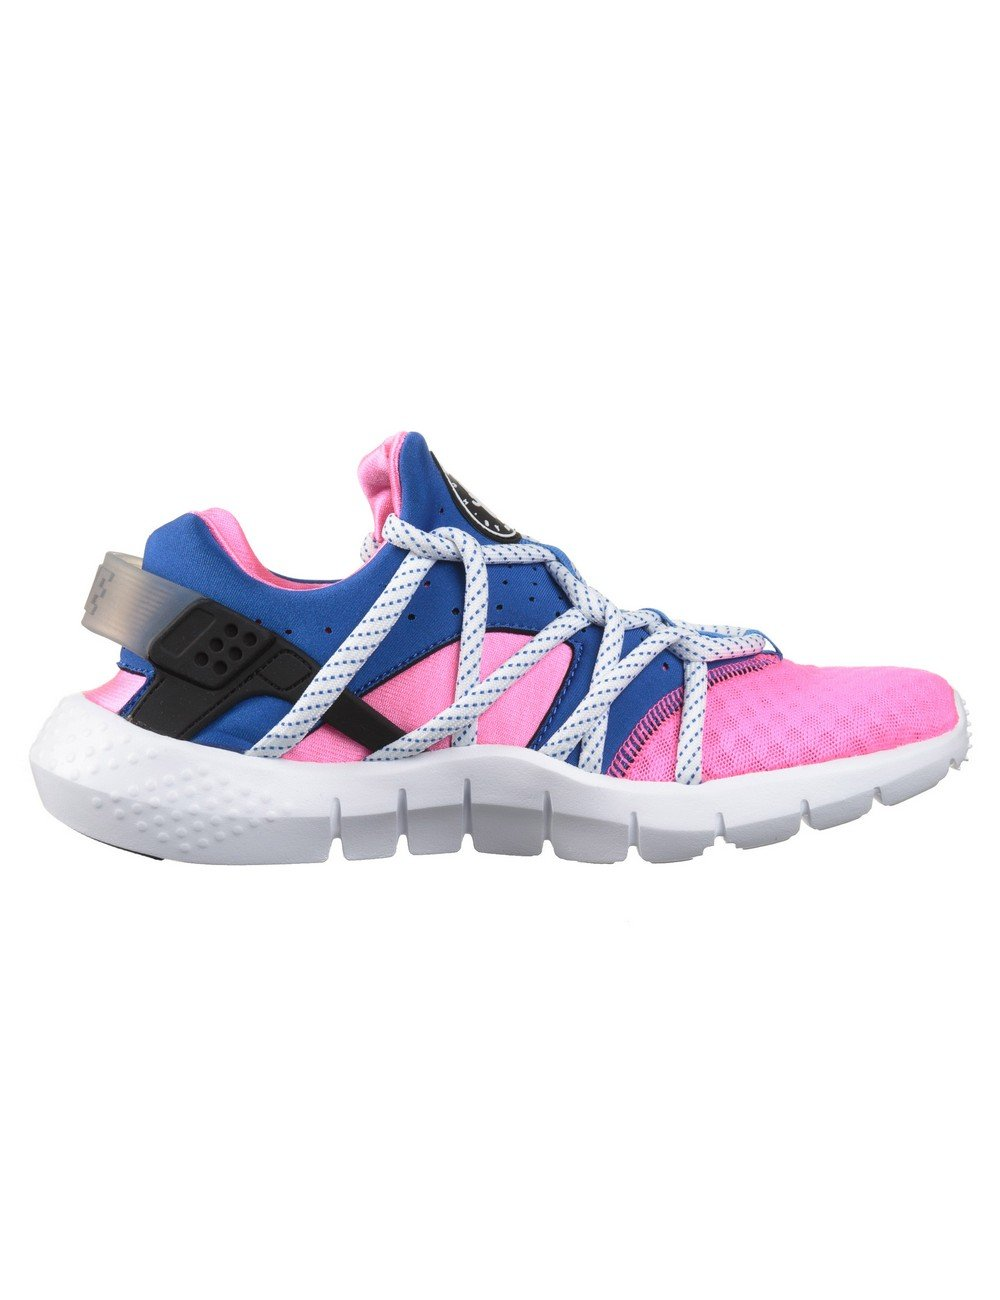 nike huarache nm shoes pink black trainers from. Black Bedroom Furniture Sets. Home Design Ideas